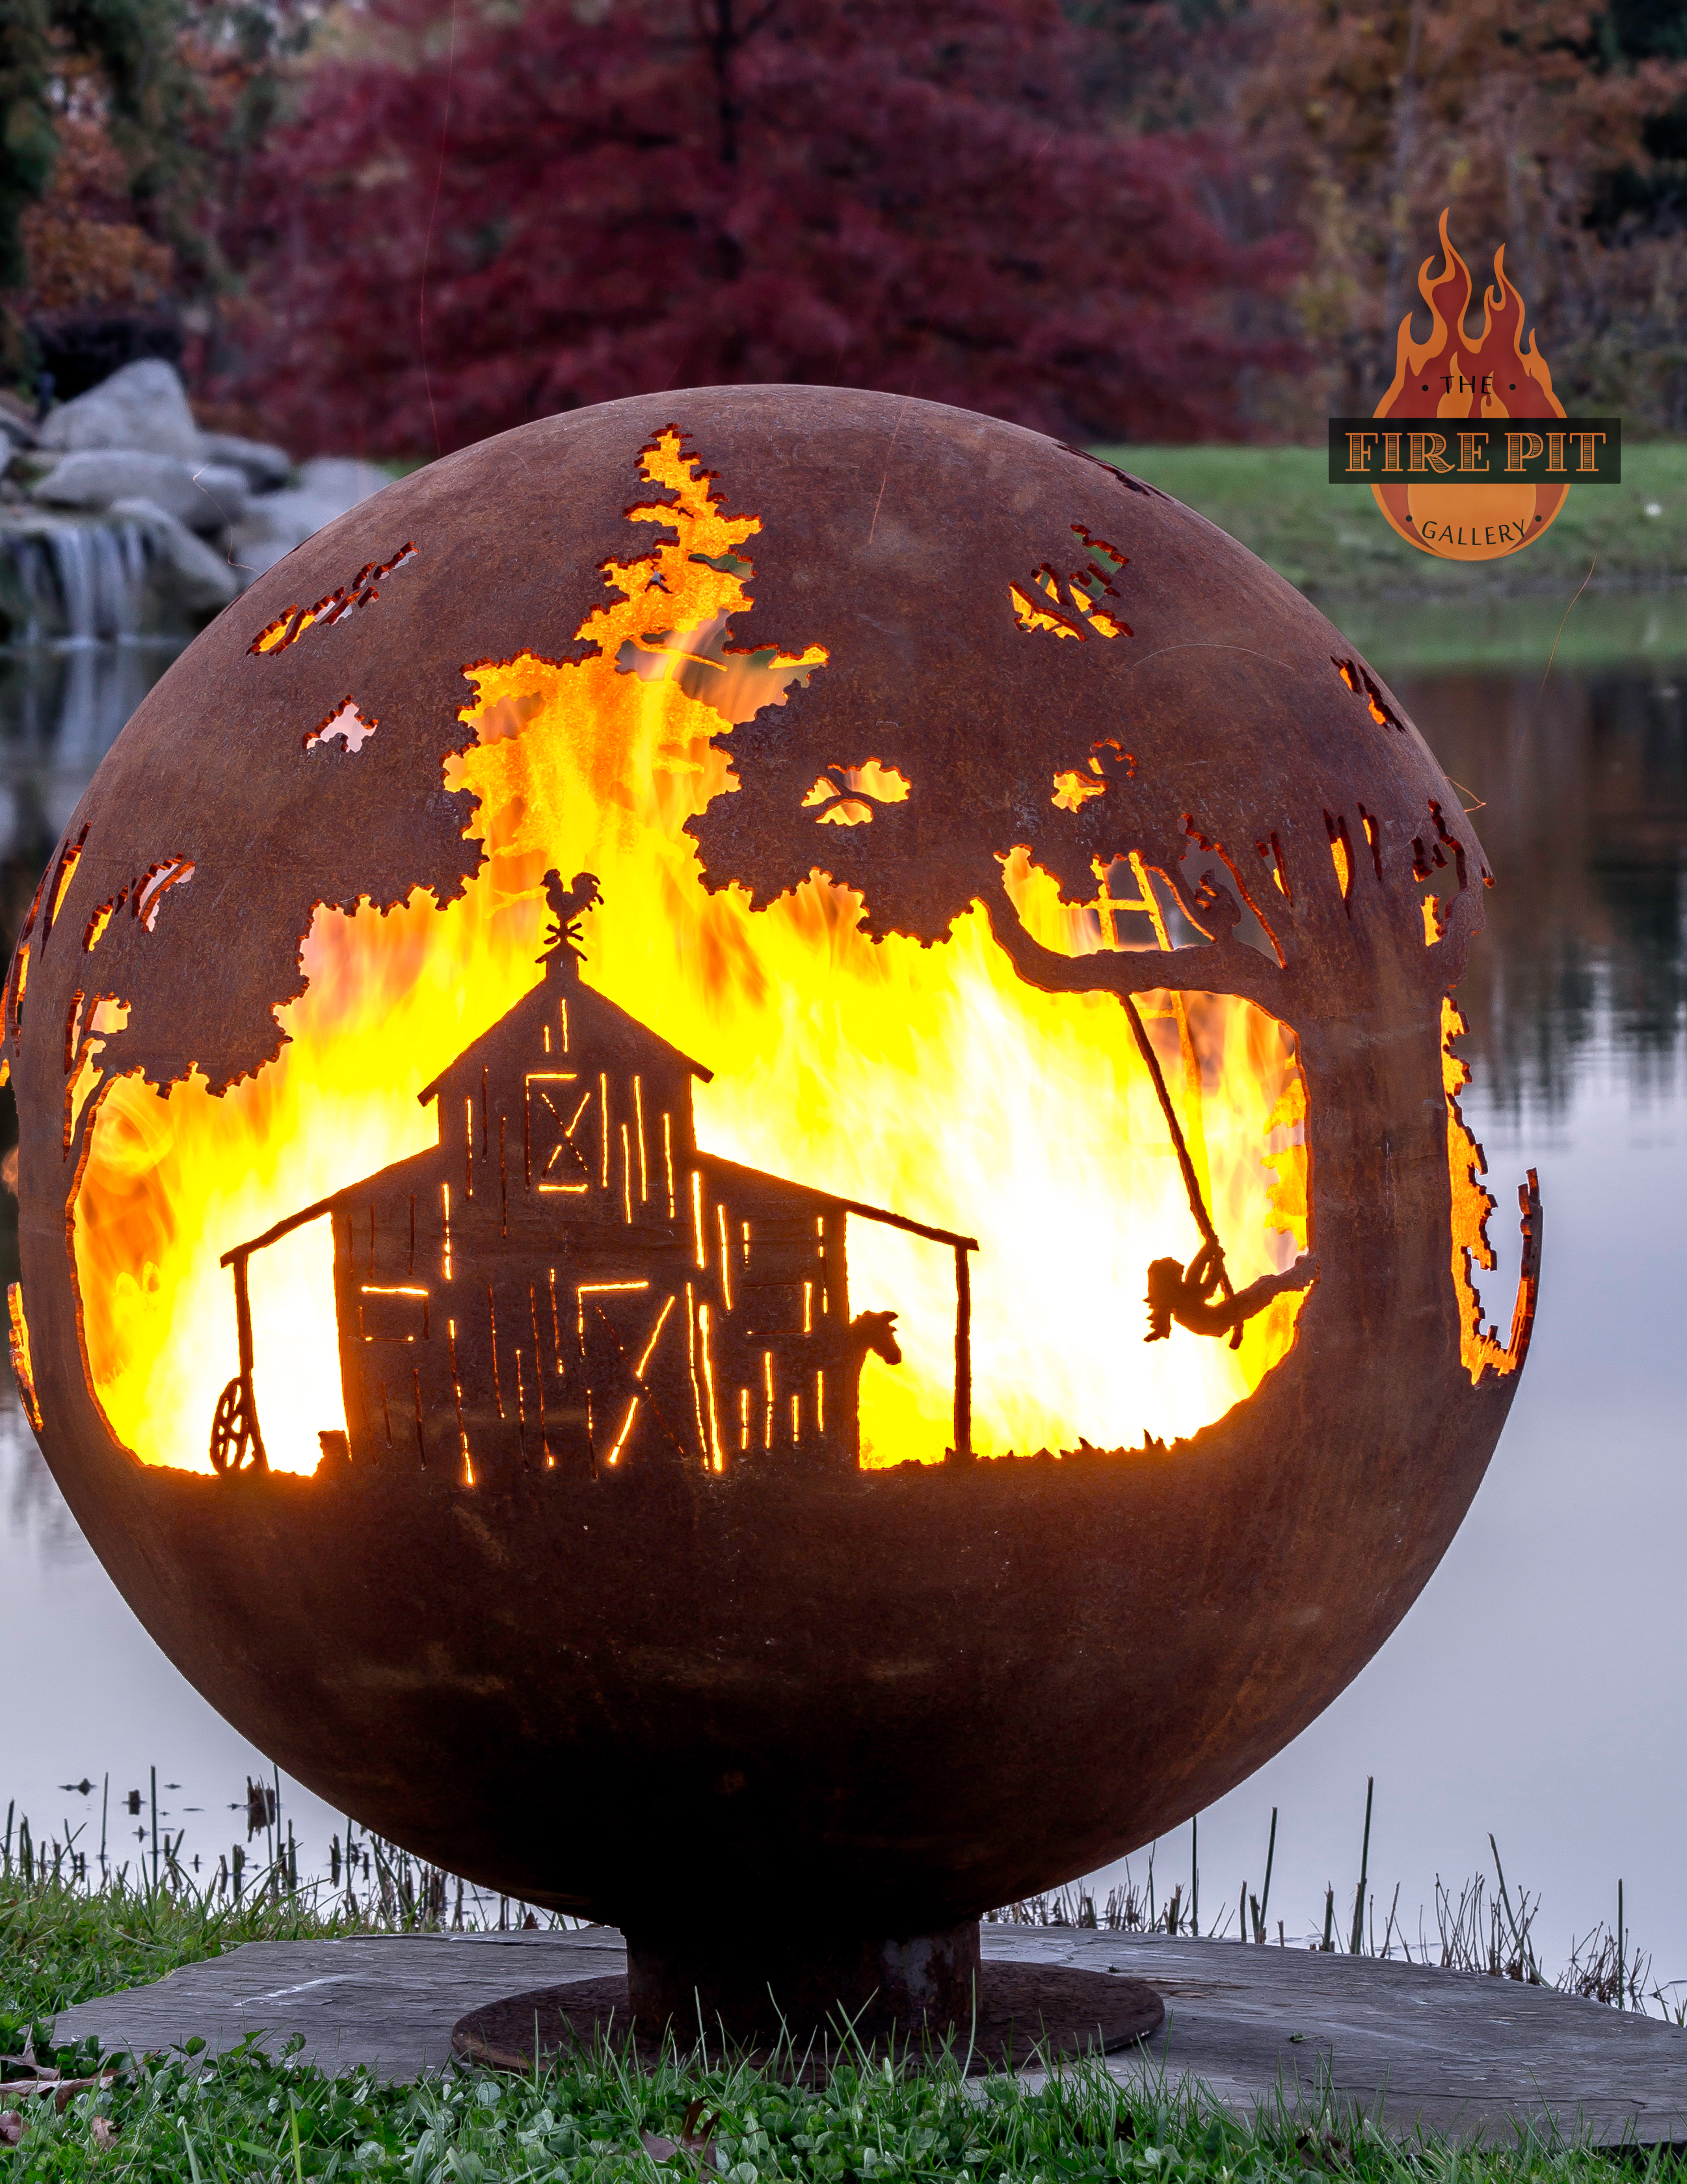 Horse Decor For The Home Farm Fire Pit Sphere Appel Crisp Farms The Fire Pit Gallery